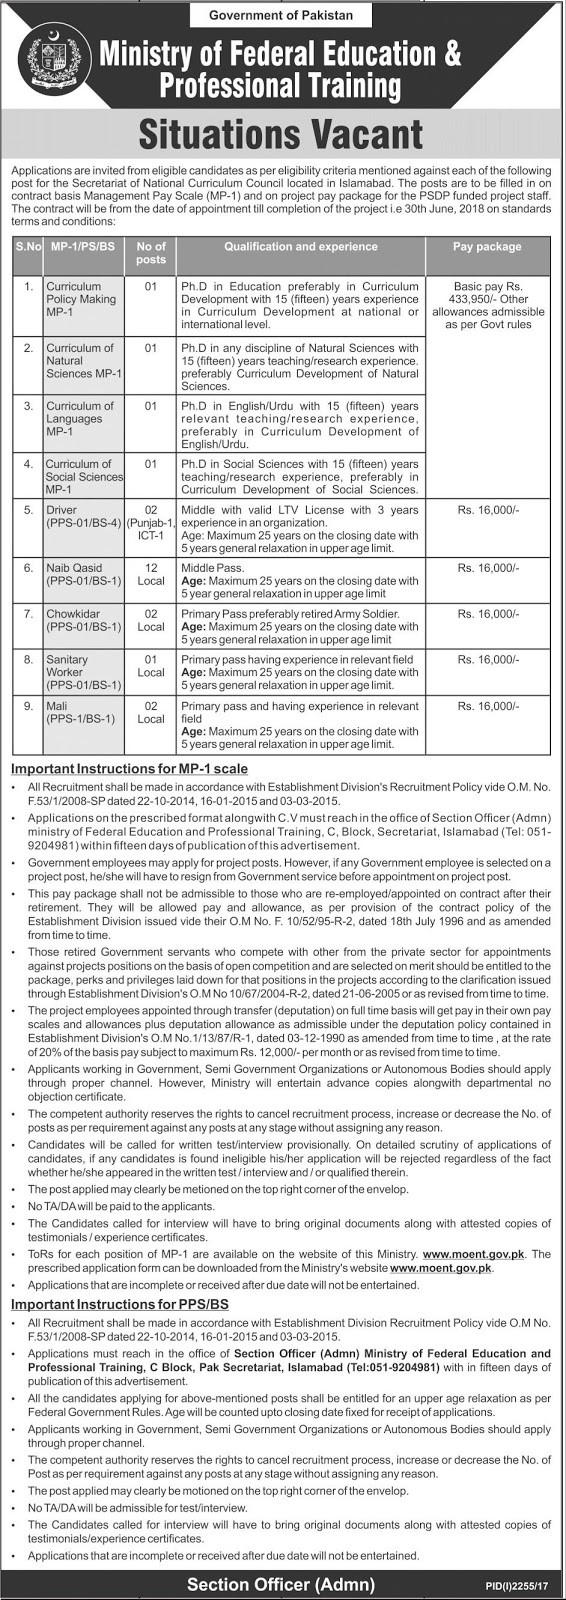 Ministry of Federal Education & Professional Training Islamabad Jobs Oct 2017.